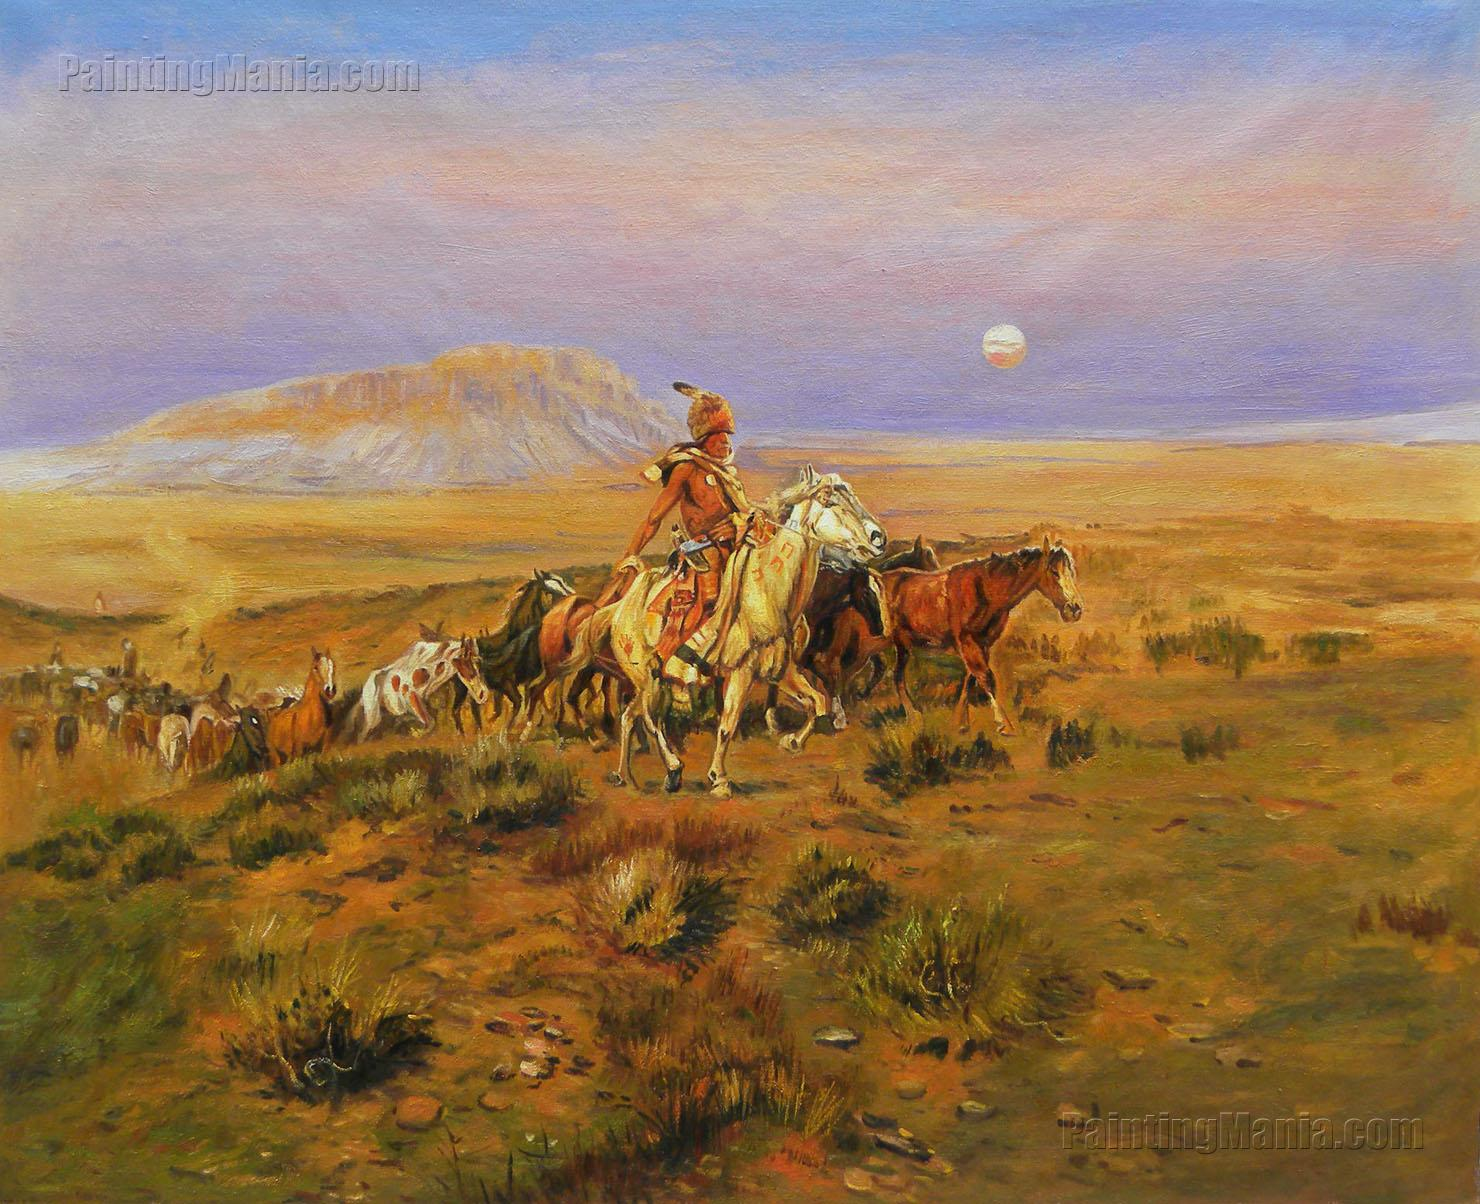 The Horse Thieves - Charles Russell hand-painted painting